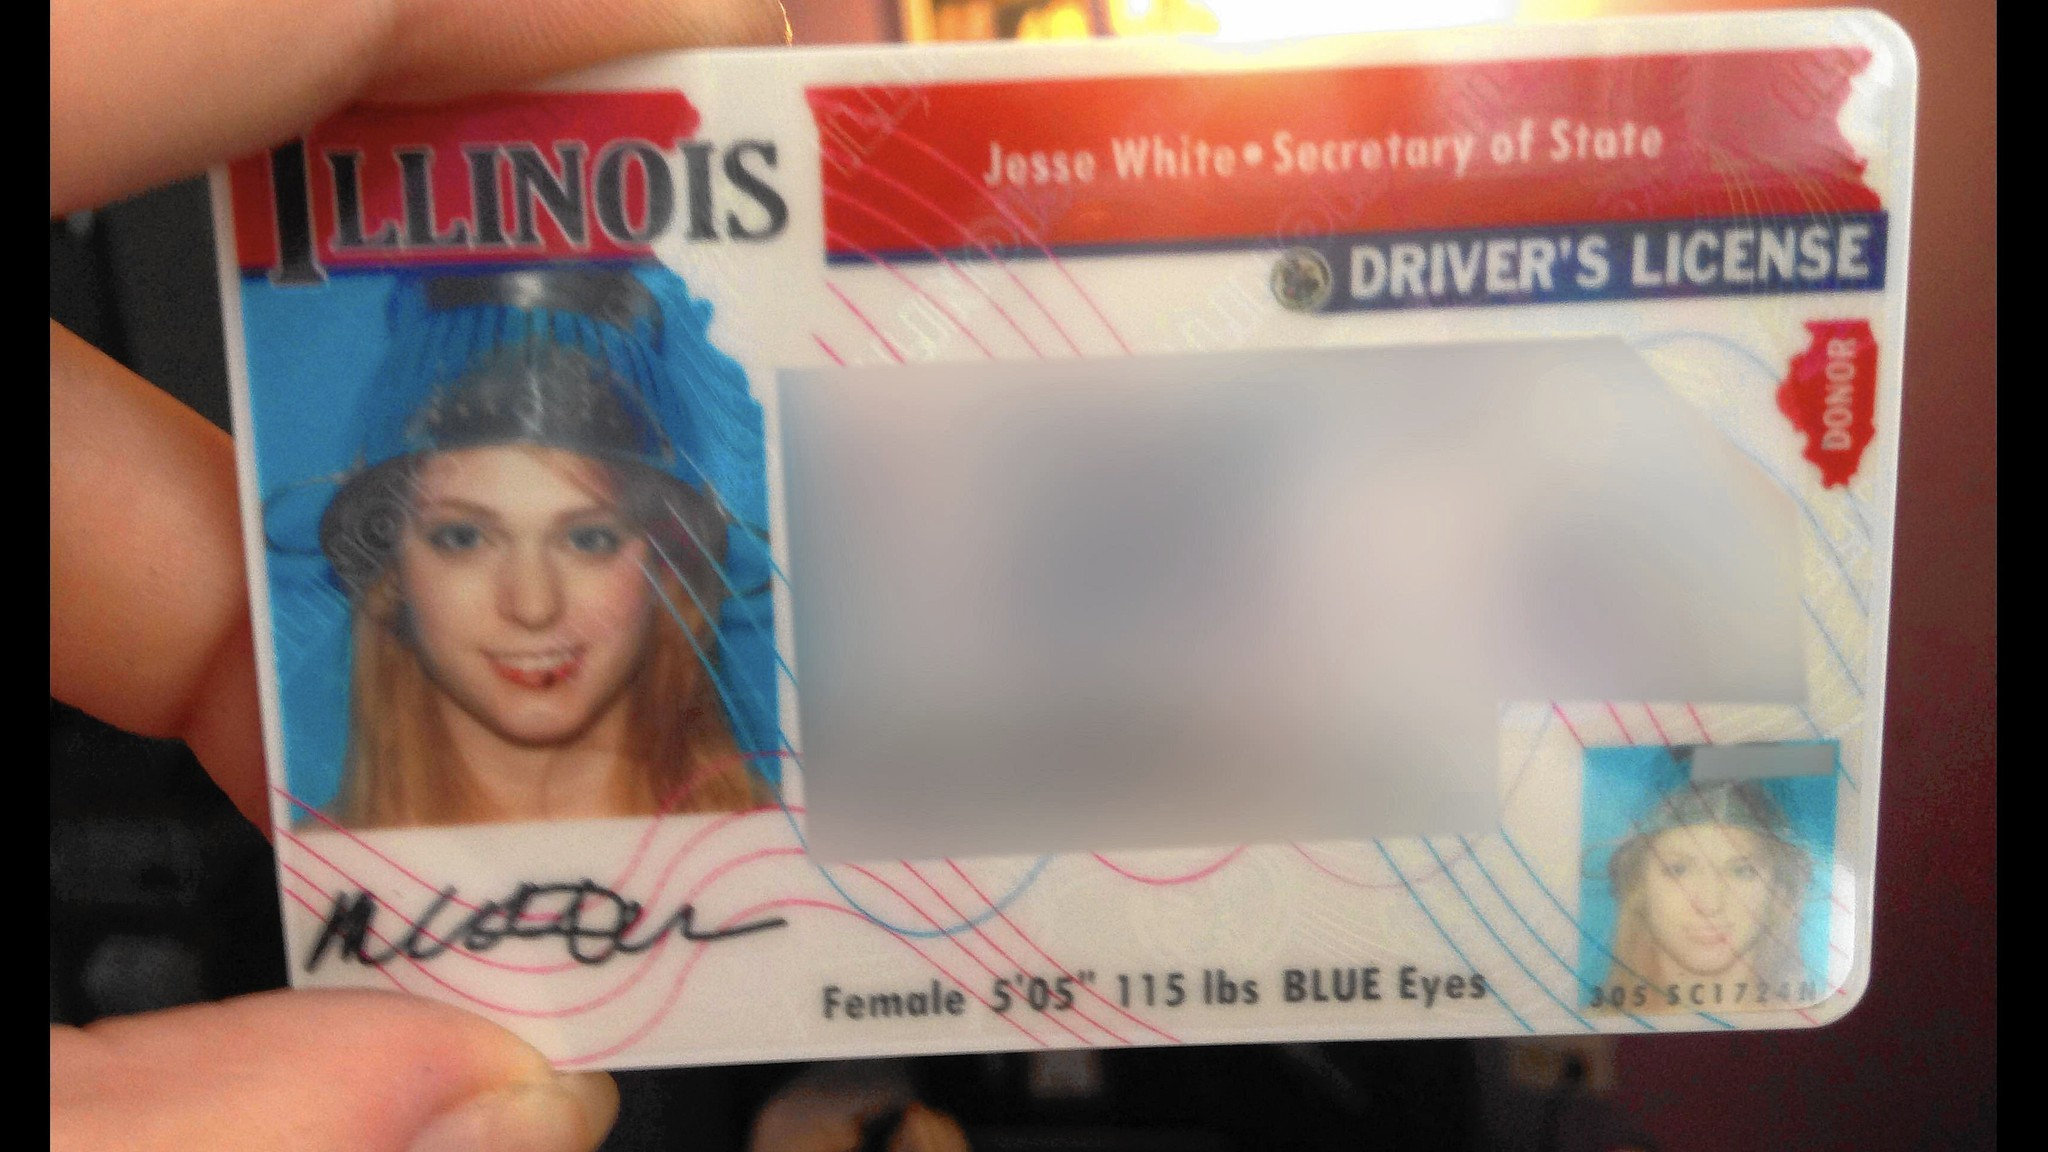 Decision to ban colander from drivers license photo strains decision to ban colander from drivers license photo strains belief chicago tribune buycottarizona